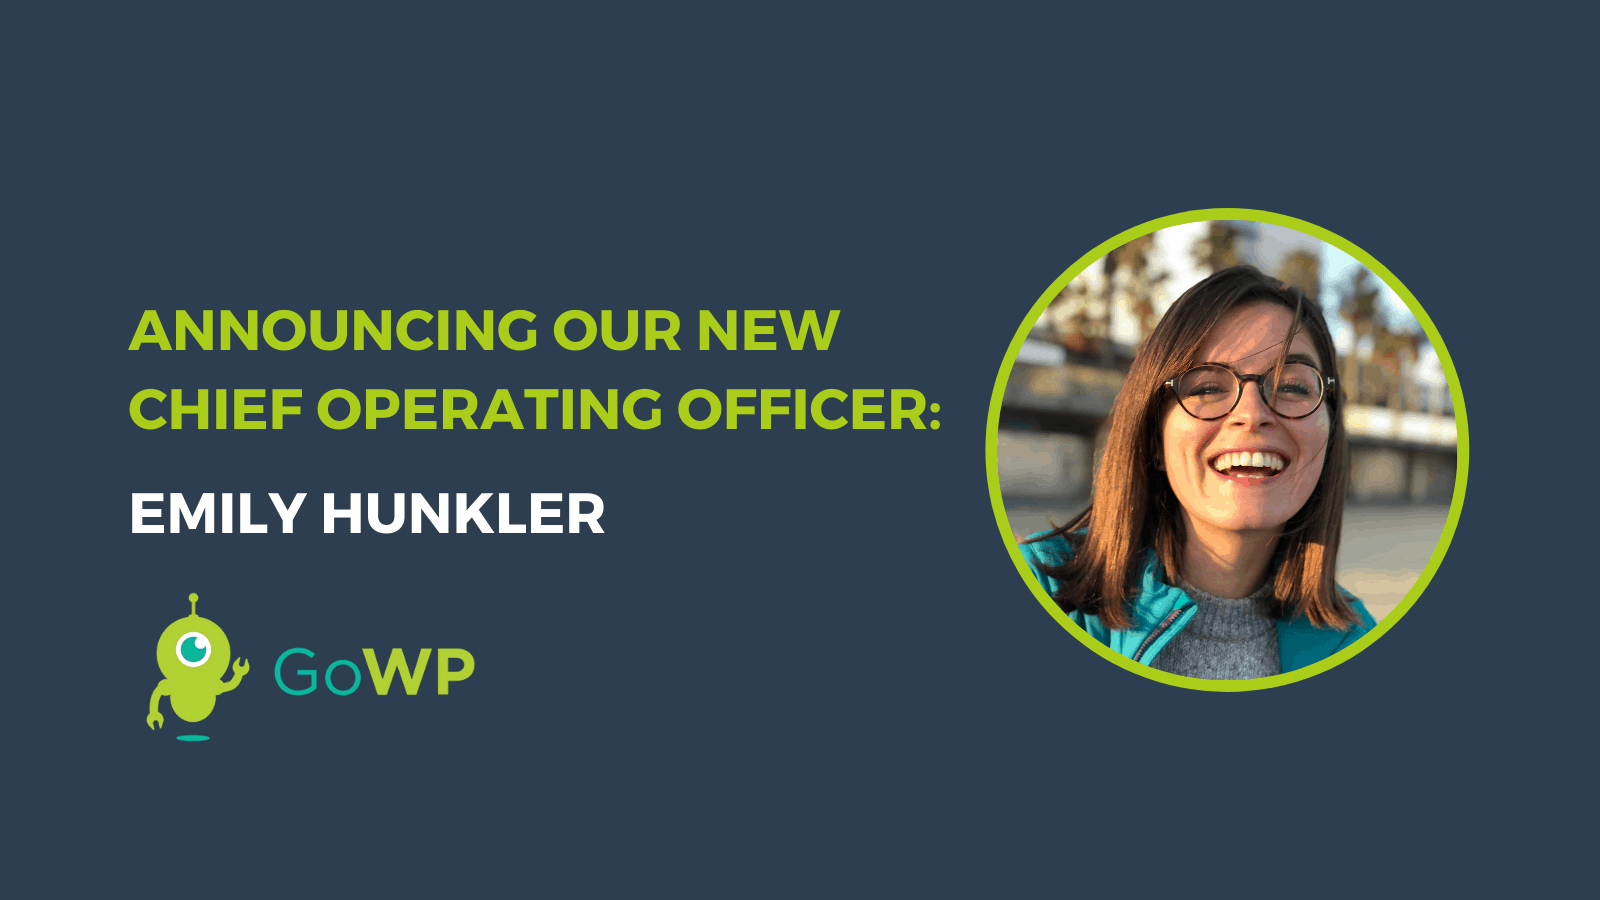 Announcing our new COO: Emily Hunkler